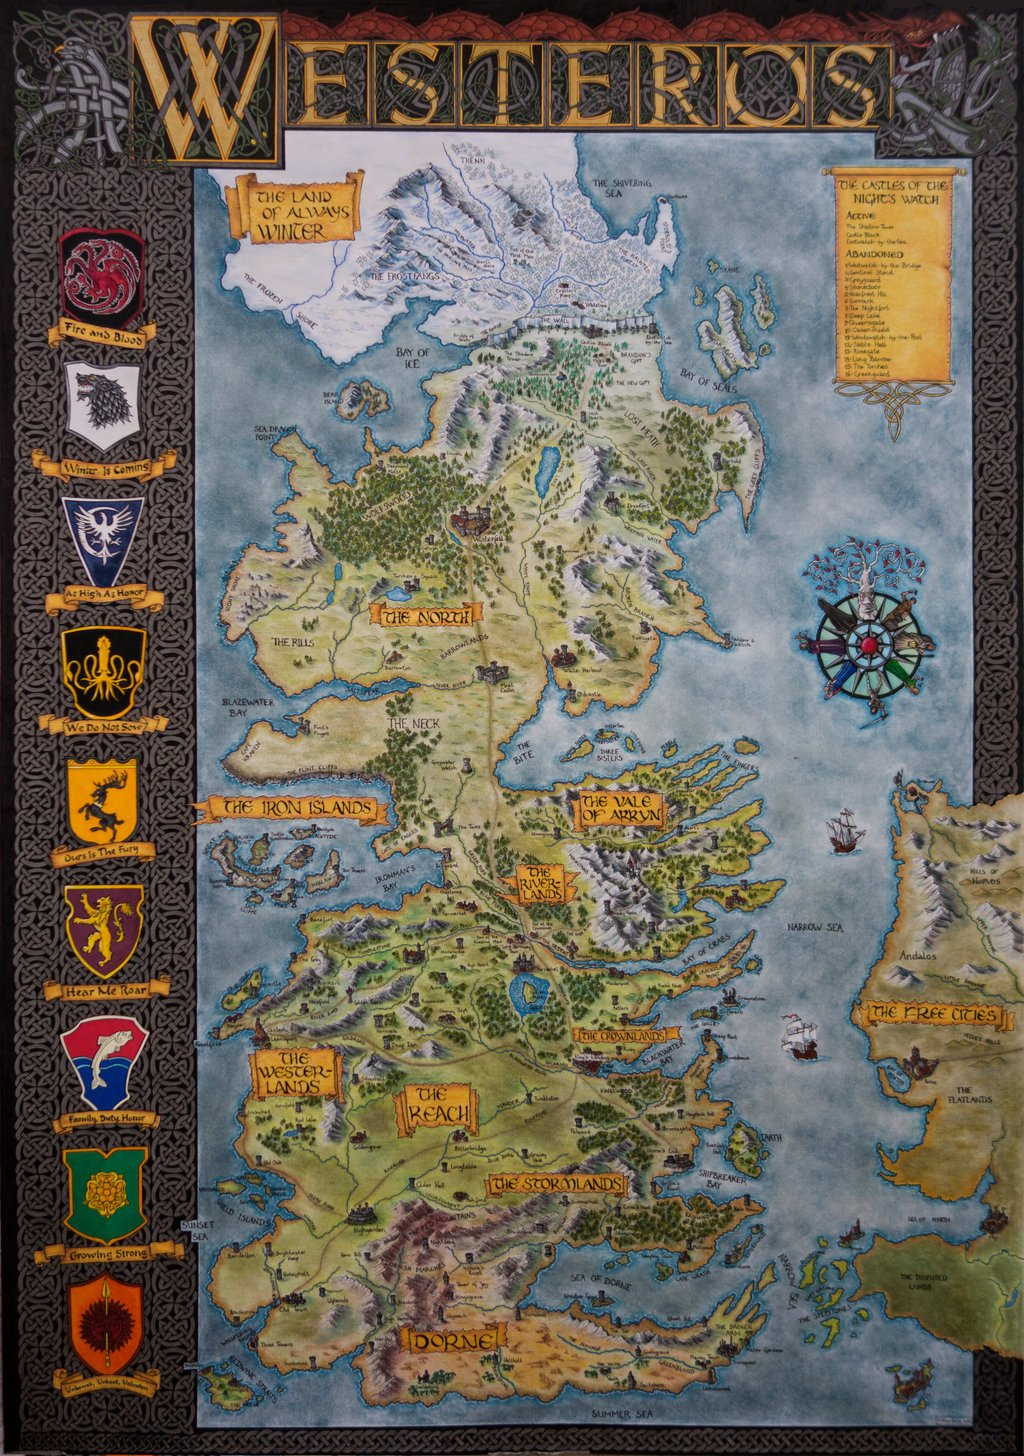 accounting westros ltd s purchase Hbo game of thrones map of westeros tan fabric $898 per yard $673 for a half yard zoom licensed by carnival film & television ltd to andover fabrics.